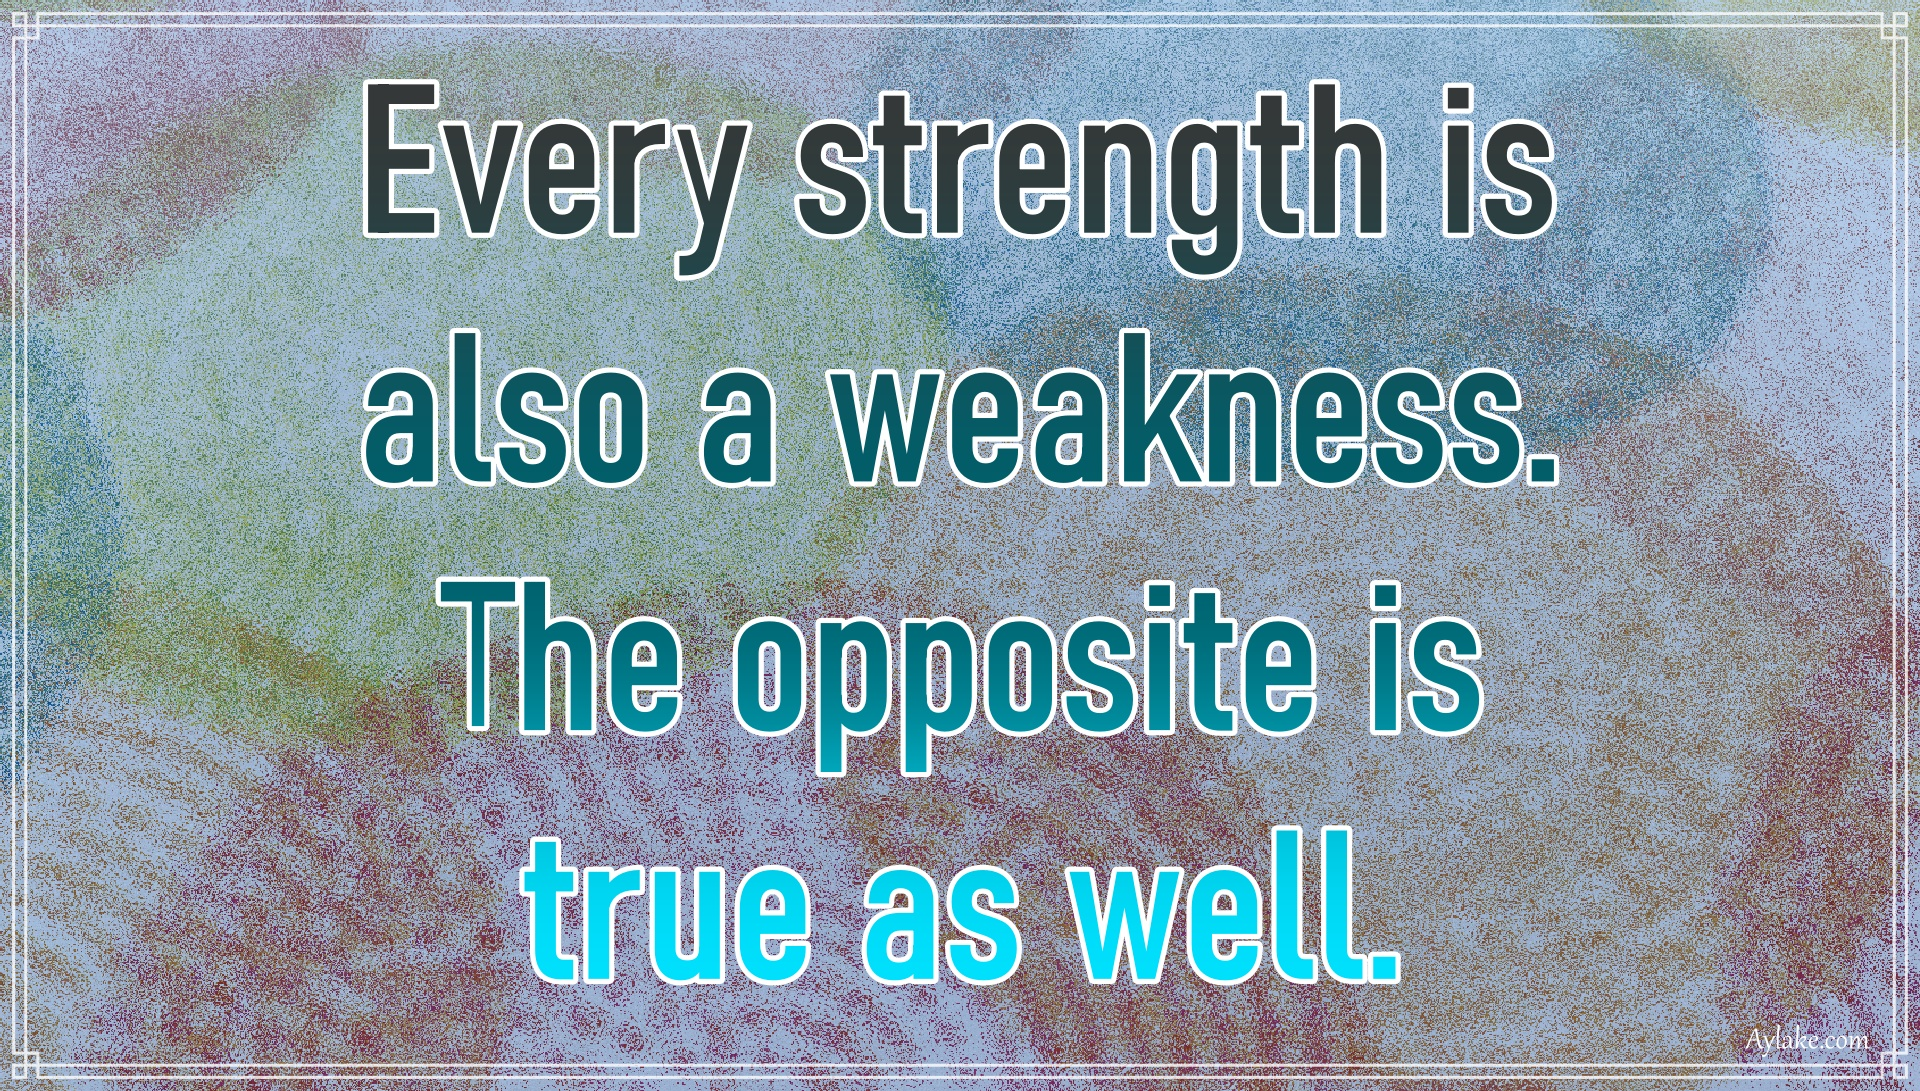 Deep quotes Every strength is also a weakness Aylake